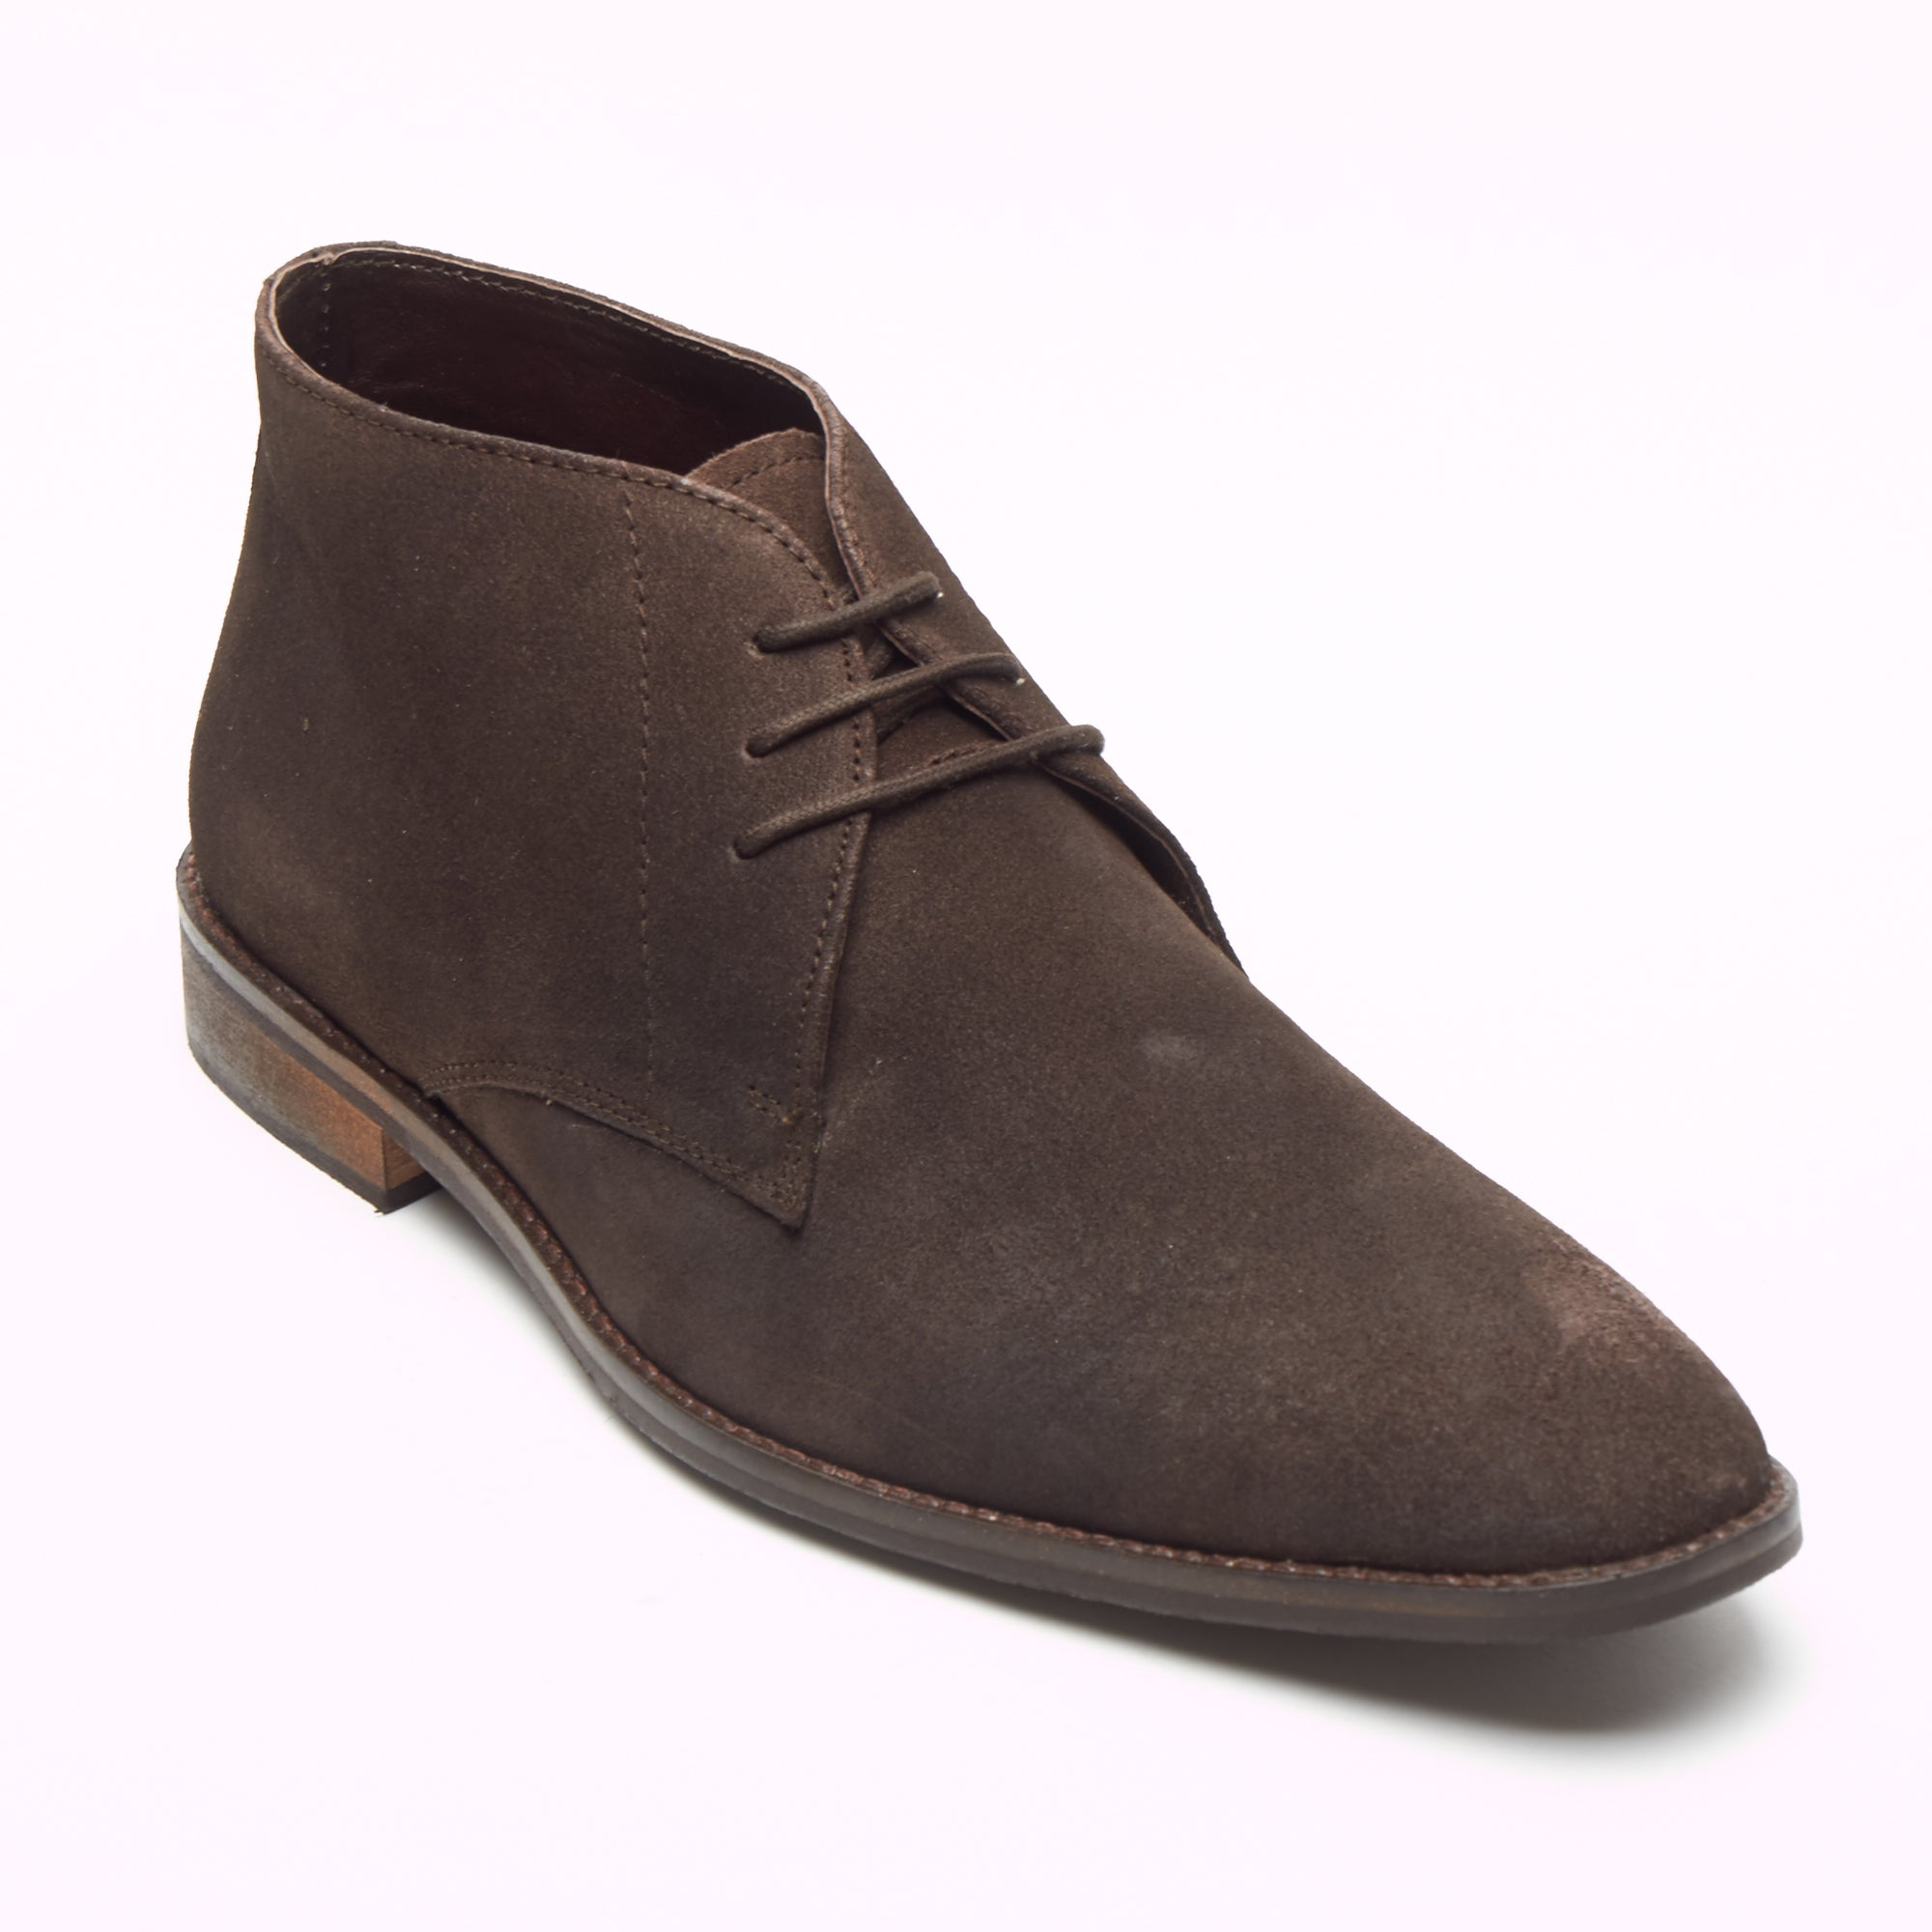 770f064193028 Mens Suede Ankle Boots - SF-251-Suede Brown